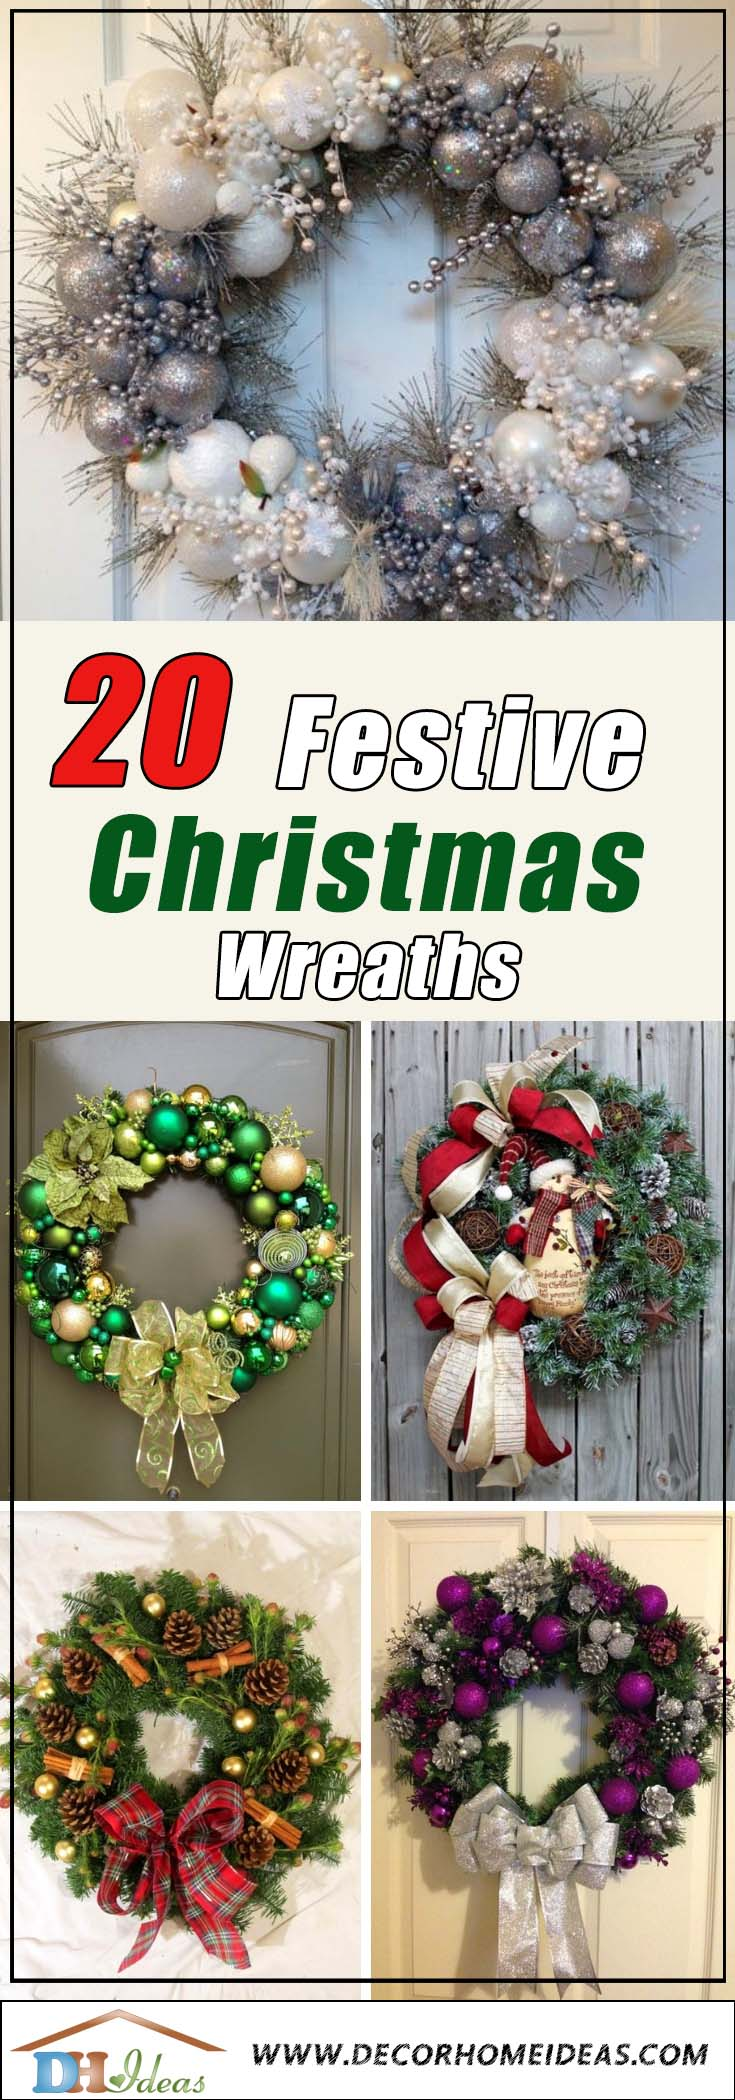 20 Festive Christmas Wreaths You Will Love To Have | DIY Christmas wreaths in all colors and forms. #diy #xmas #x-mas #christmas #wreath #christmasdecor #decoration #decoratingideas #festive #decorhomeideas